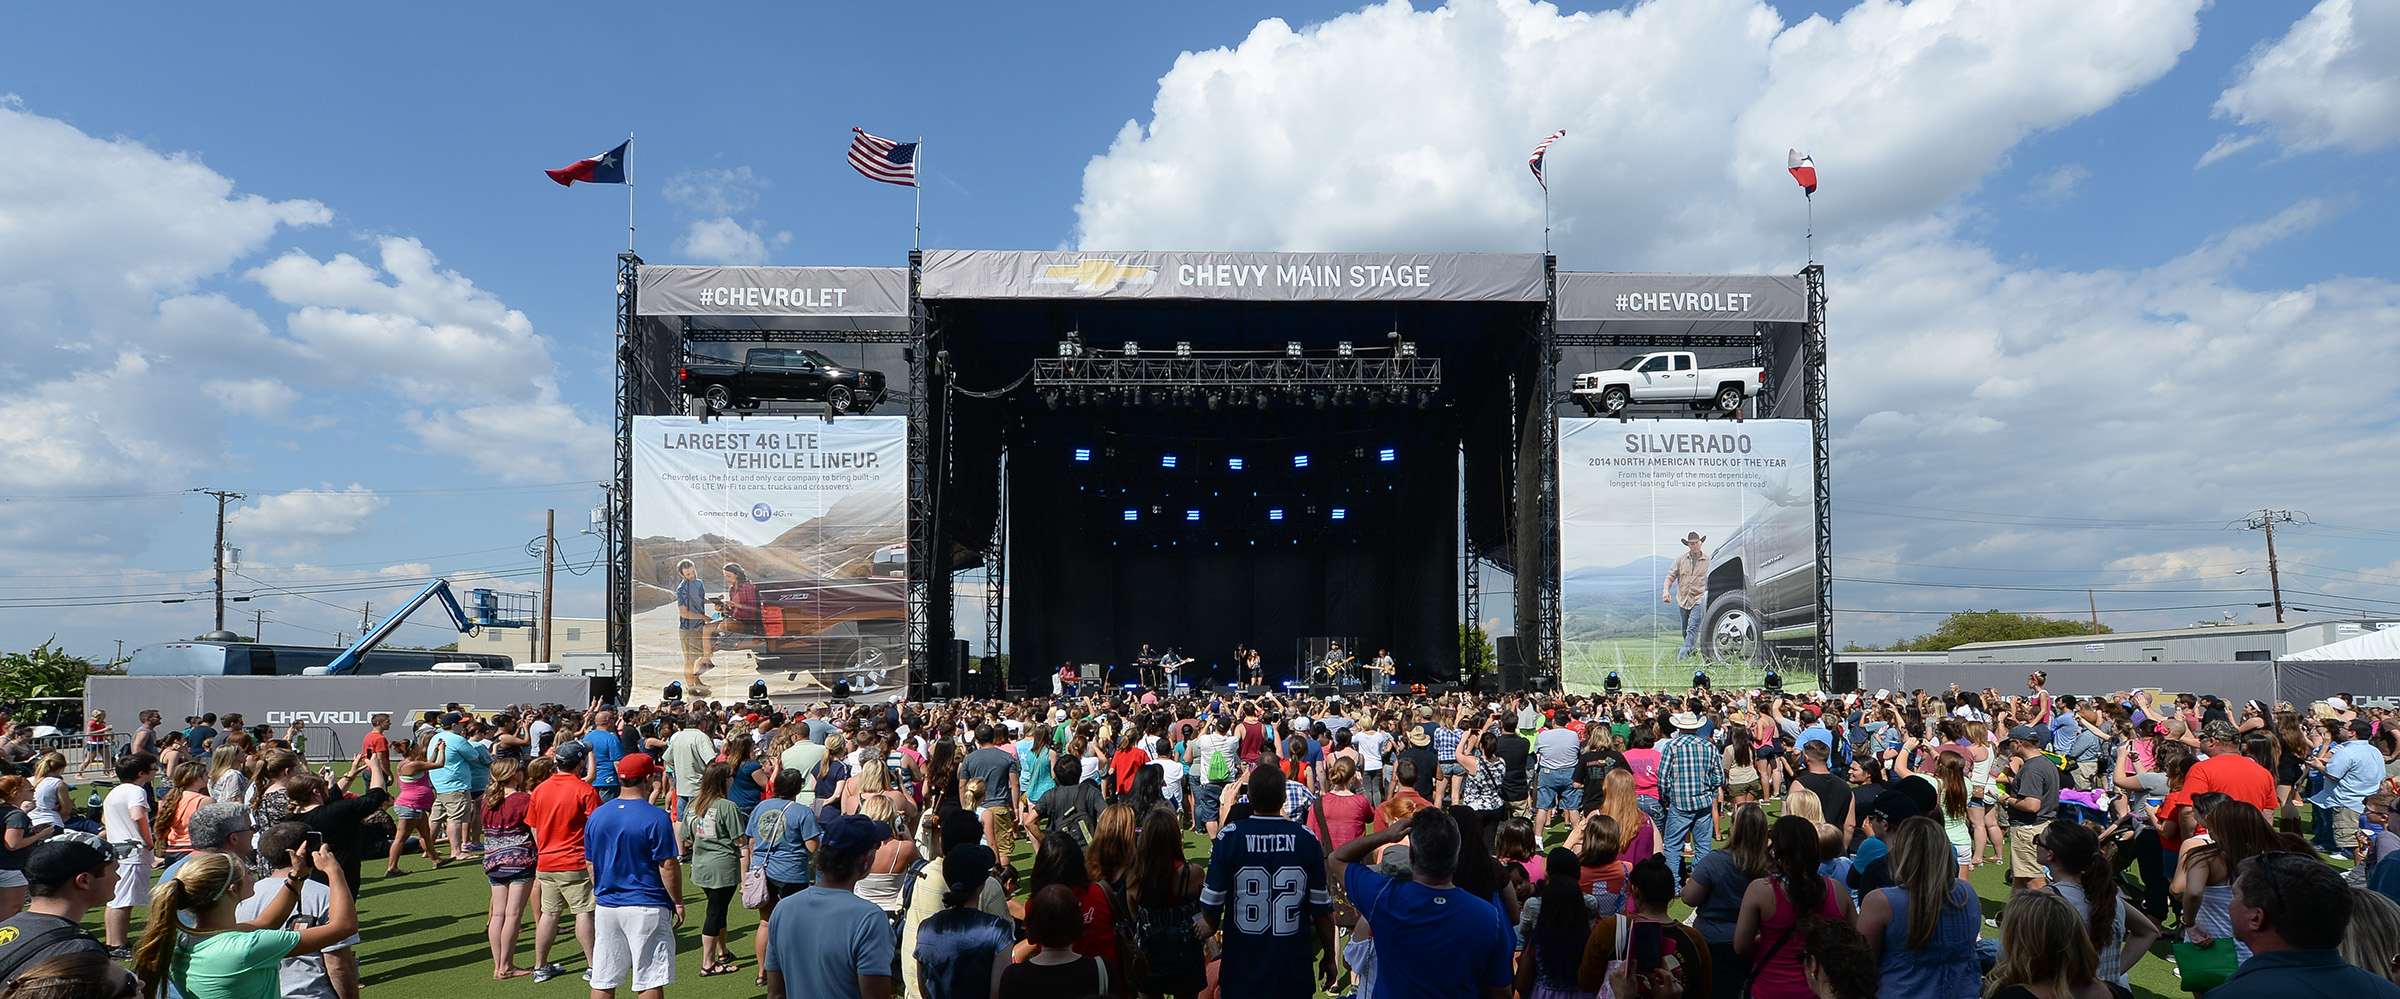 Live Music at the Chevy Main Stage